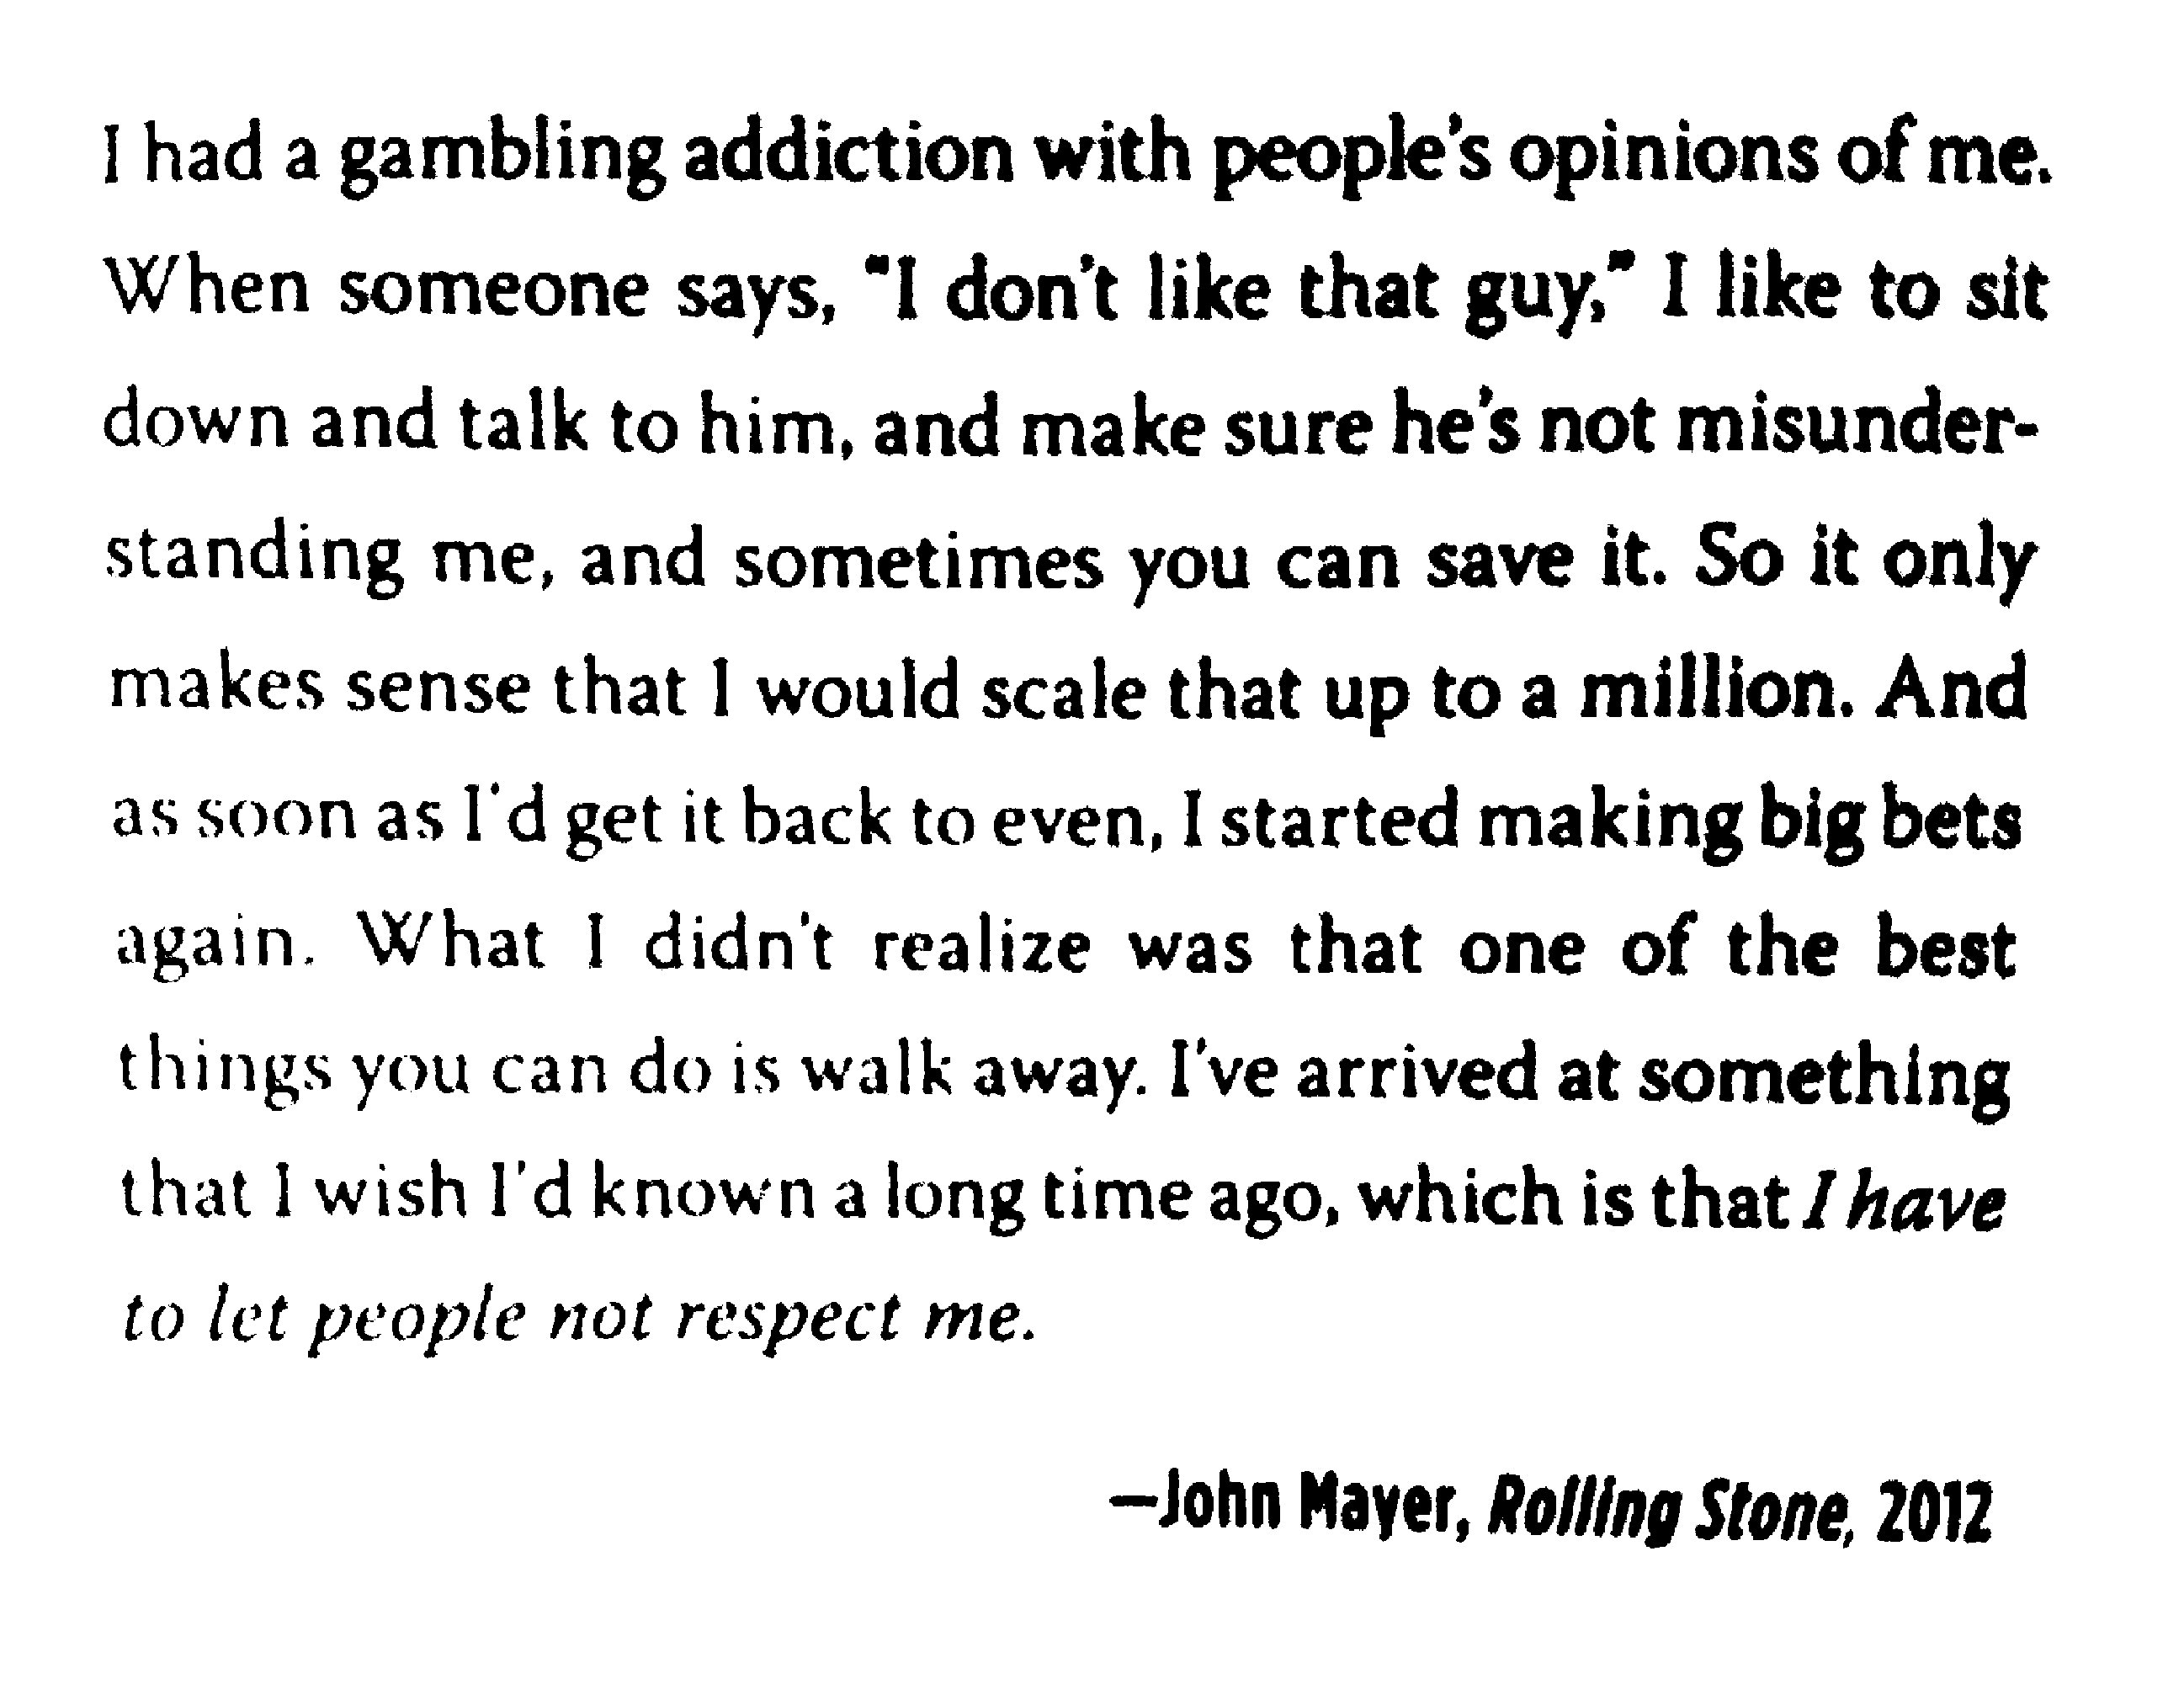 [Image] John Mayer on haters